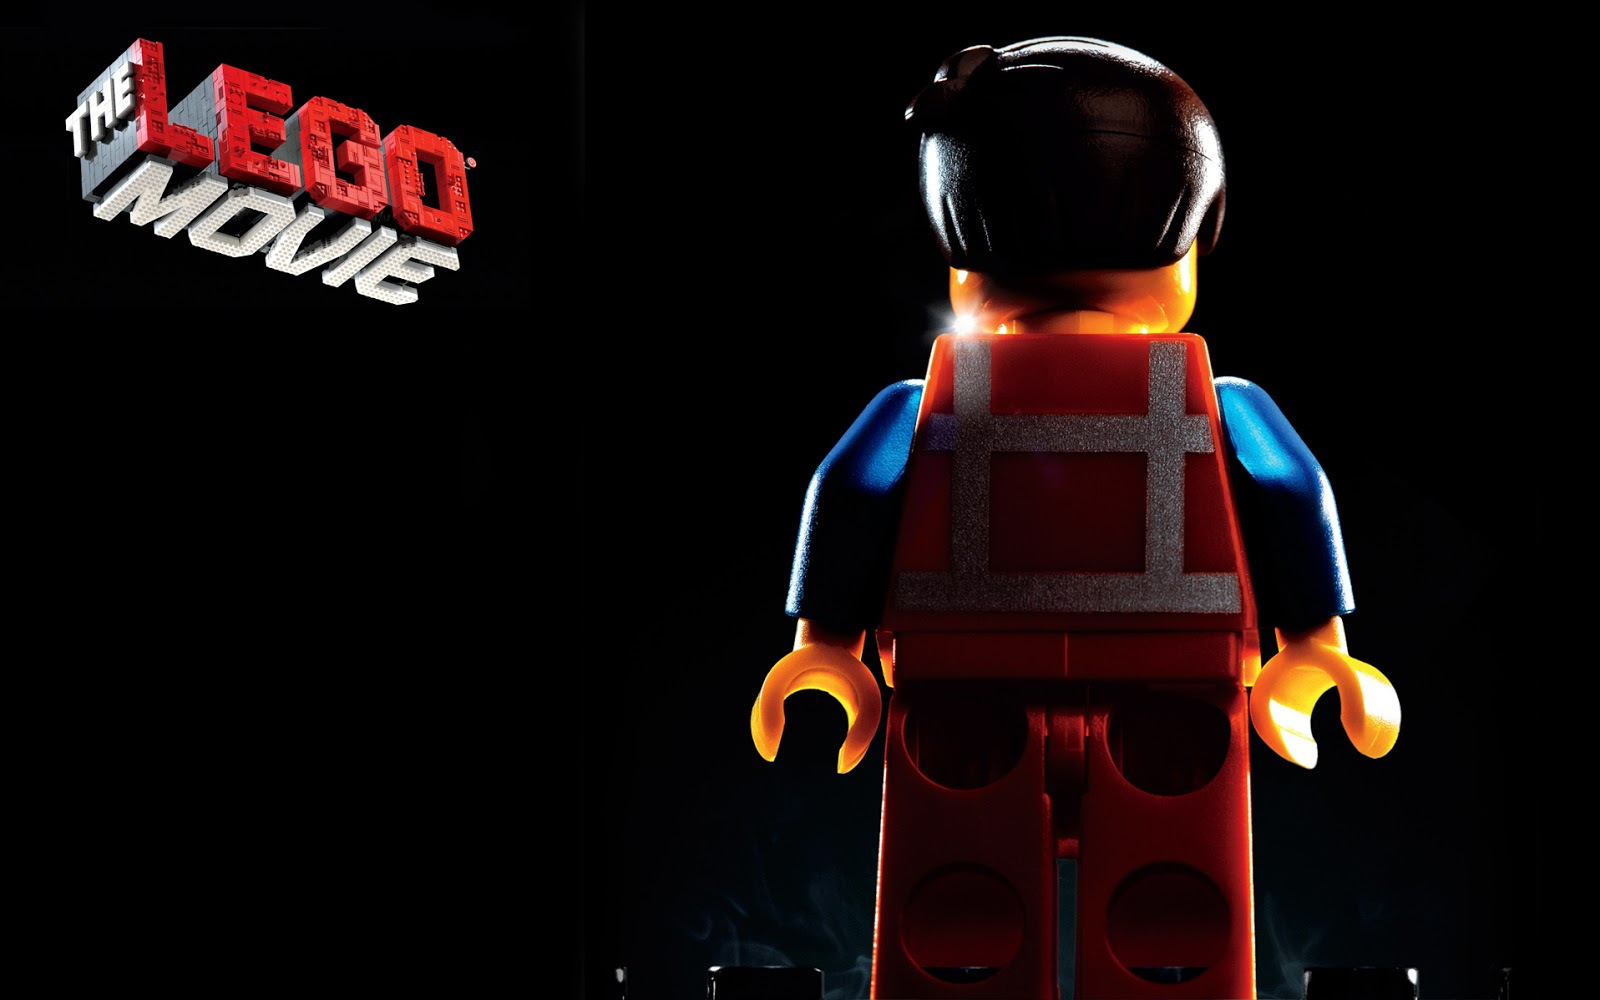 Lego 3D Movie HD Wallpaper